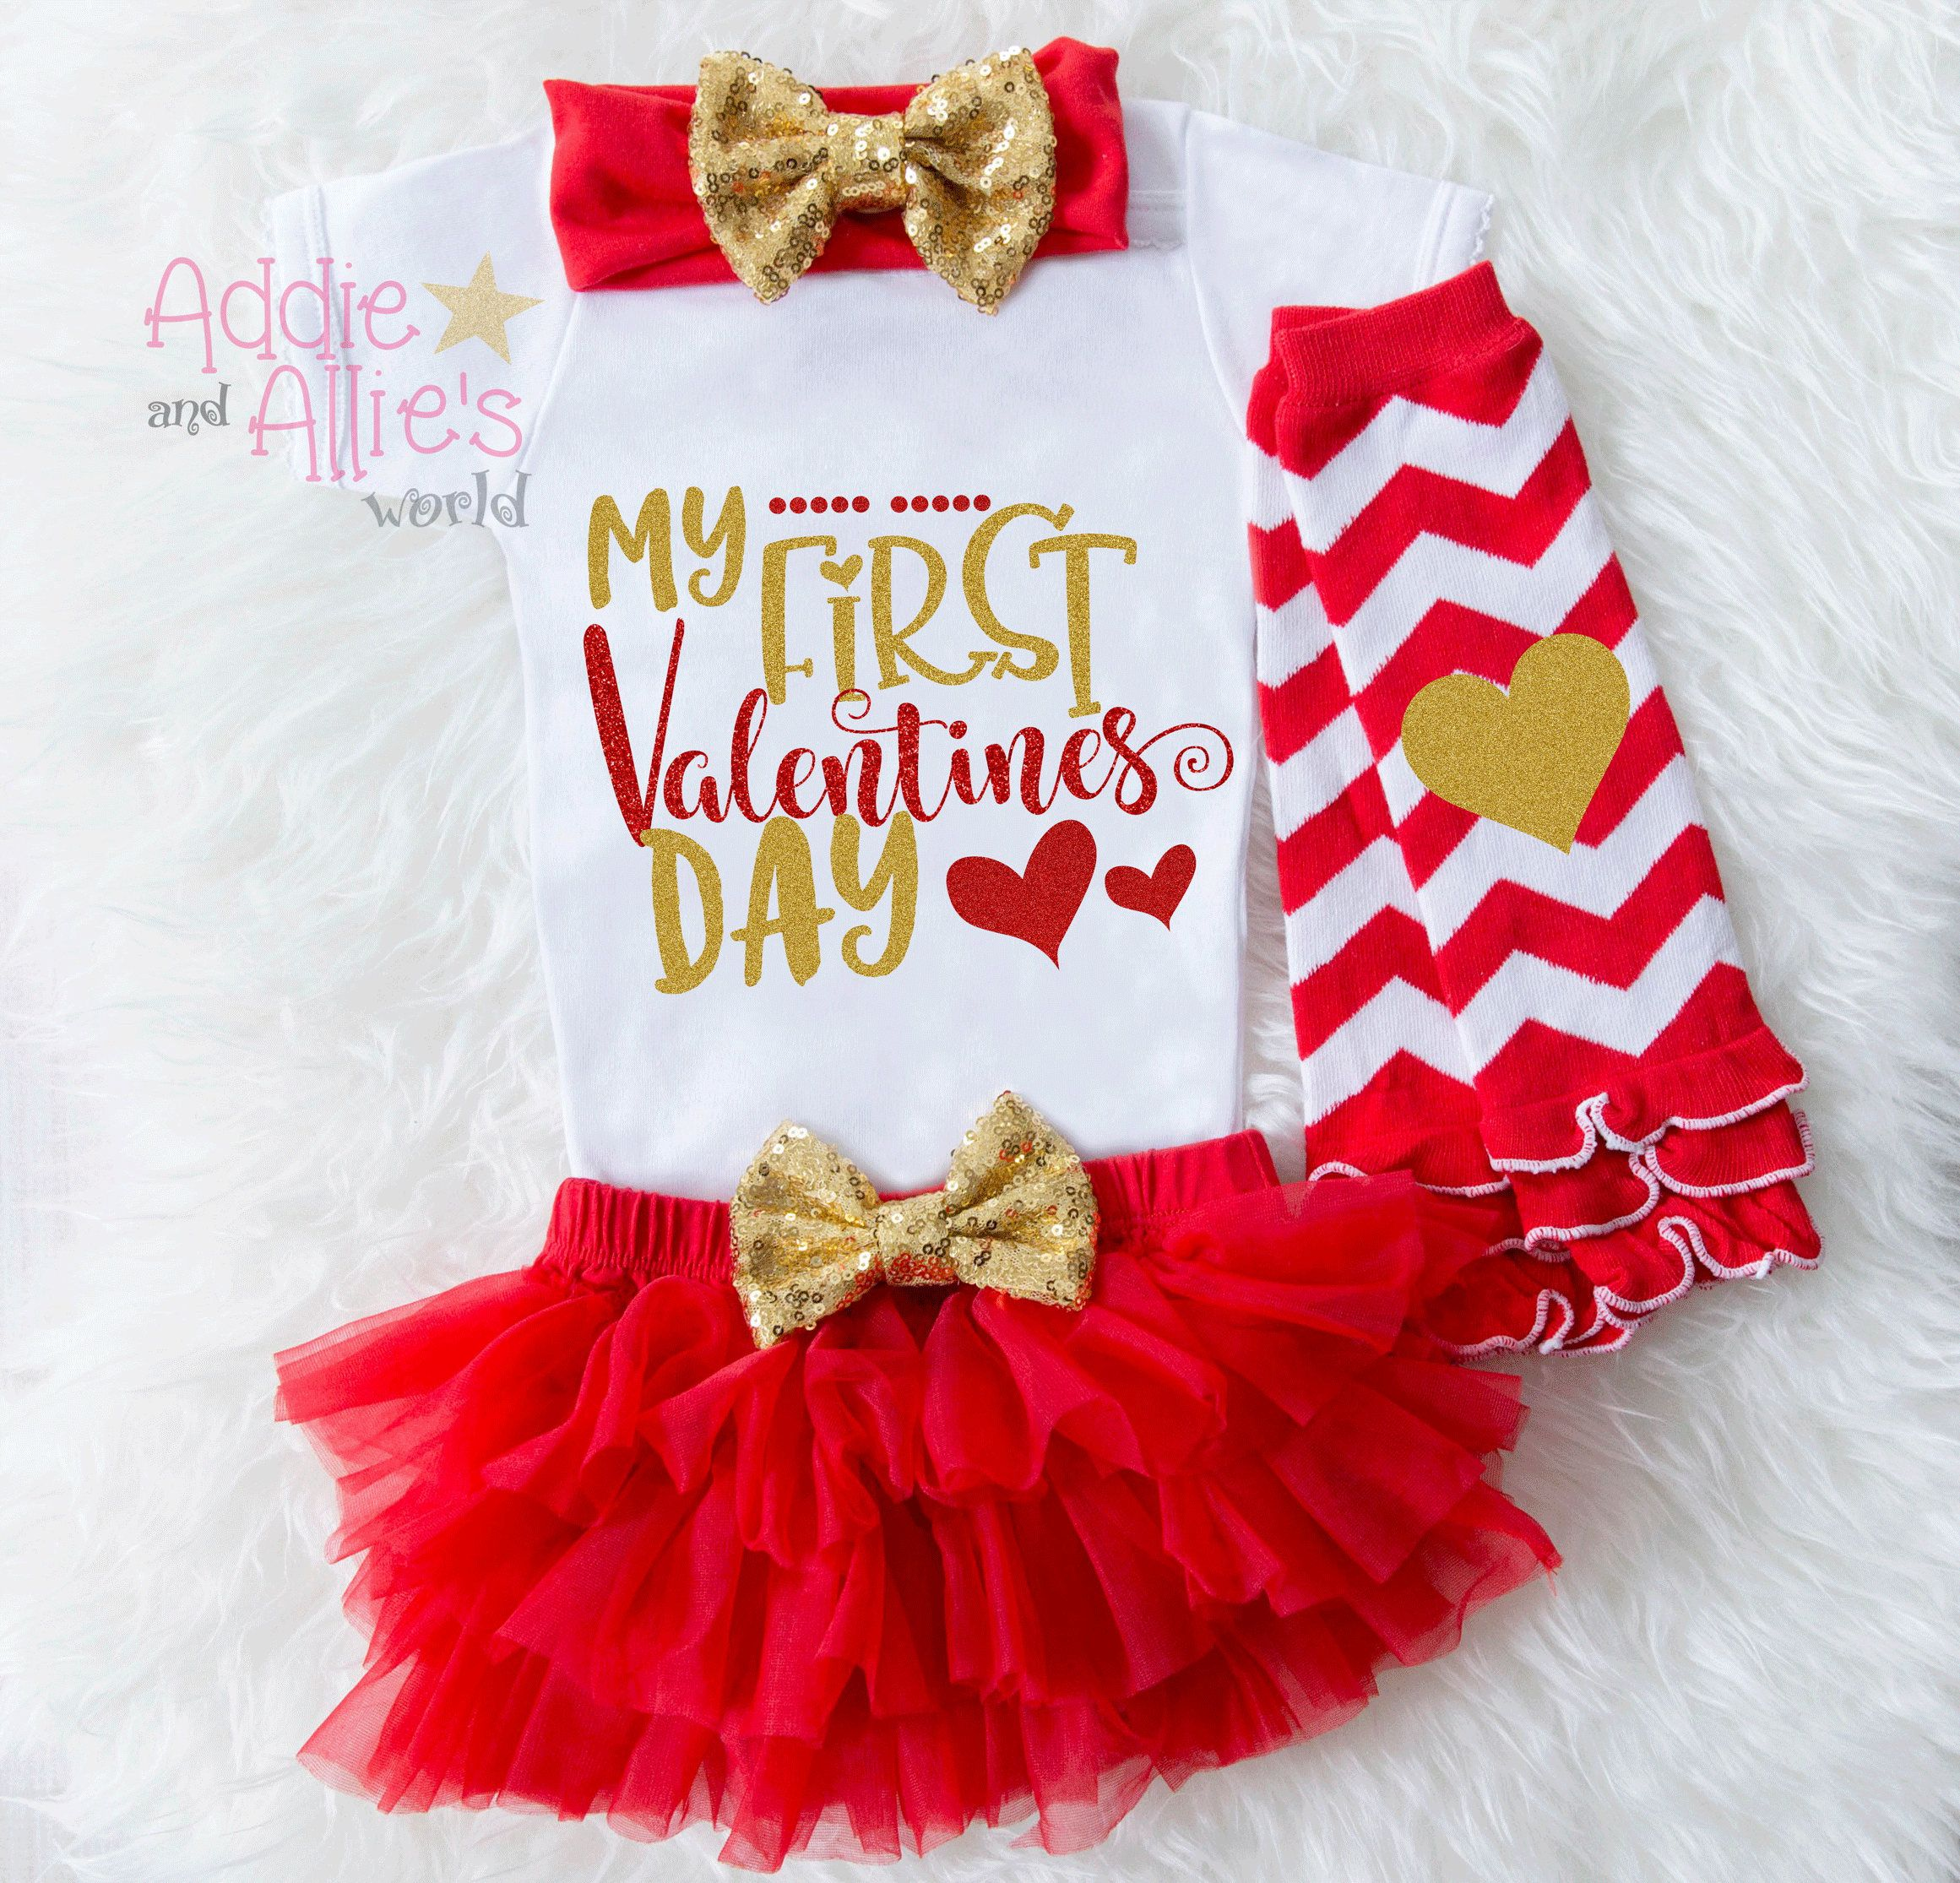 Baby Girl Valentine Outfit, My First Valentine Shirt, Baby Valentines Day  Outfit, My First Valentine Outfit, Girls First Valentine Set, V3G